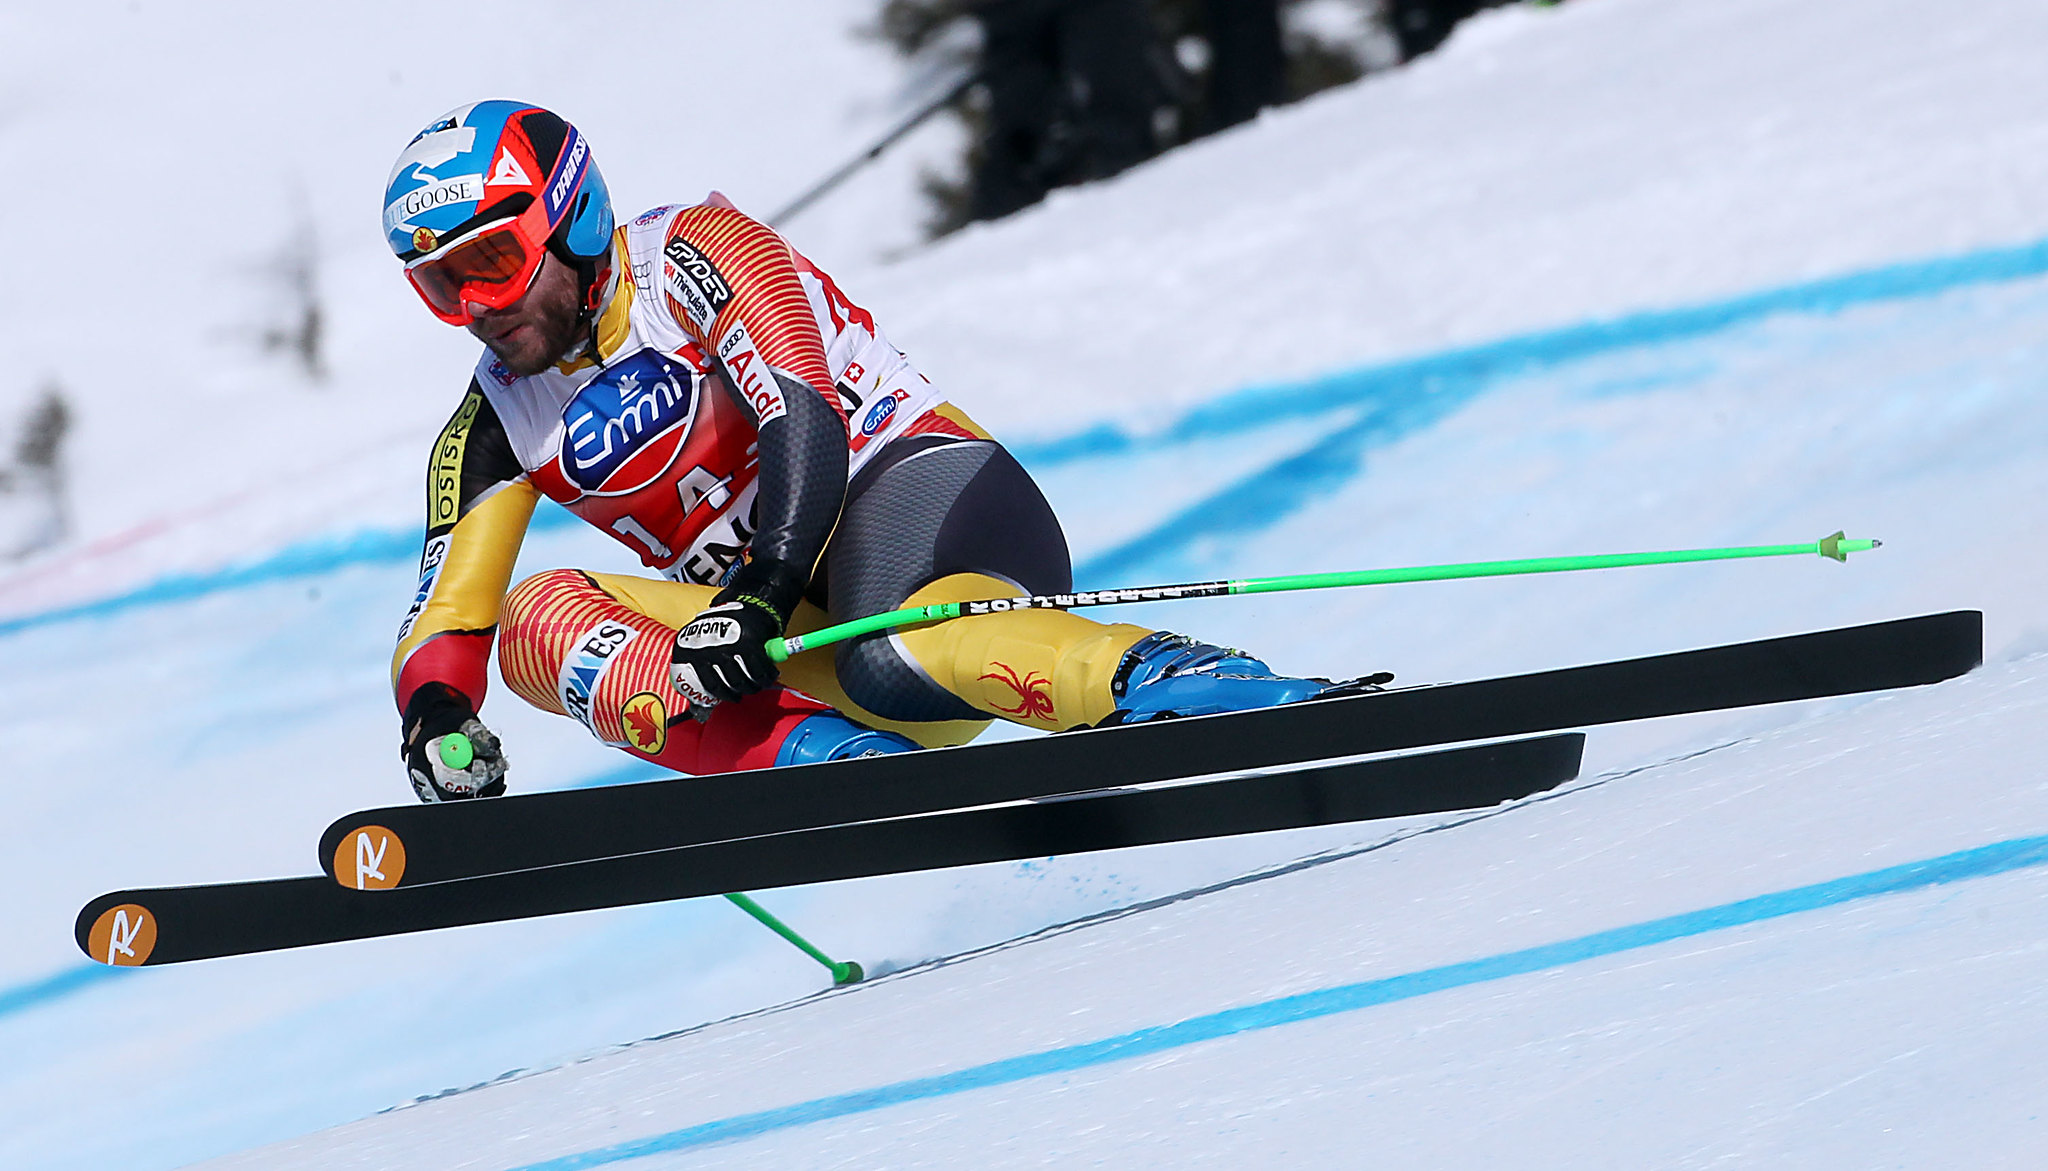 Jan Hudec in action in men's downhill, Wengen, Switzerland.